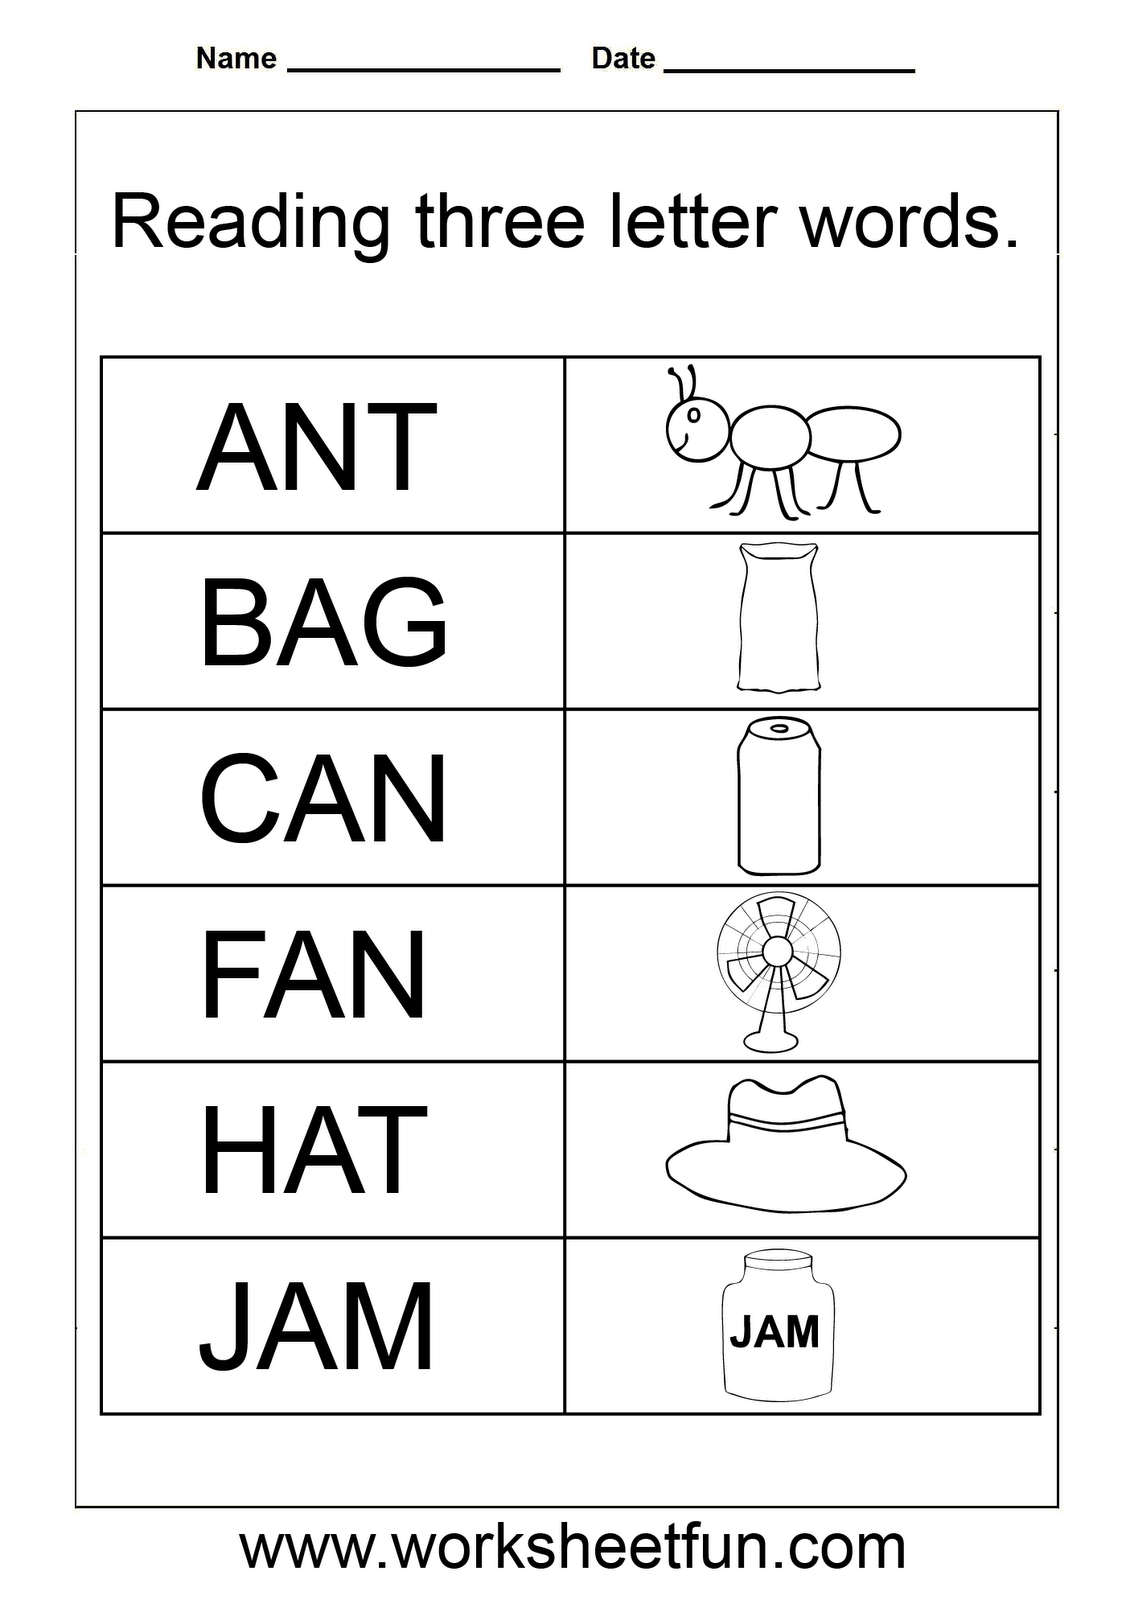 3letter words Worksheets – Beginning Reading Worksheets